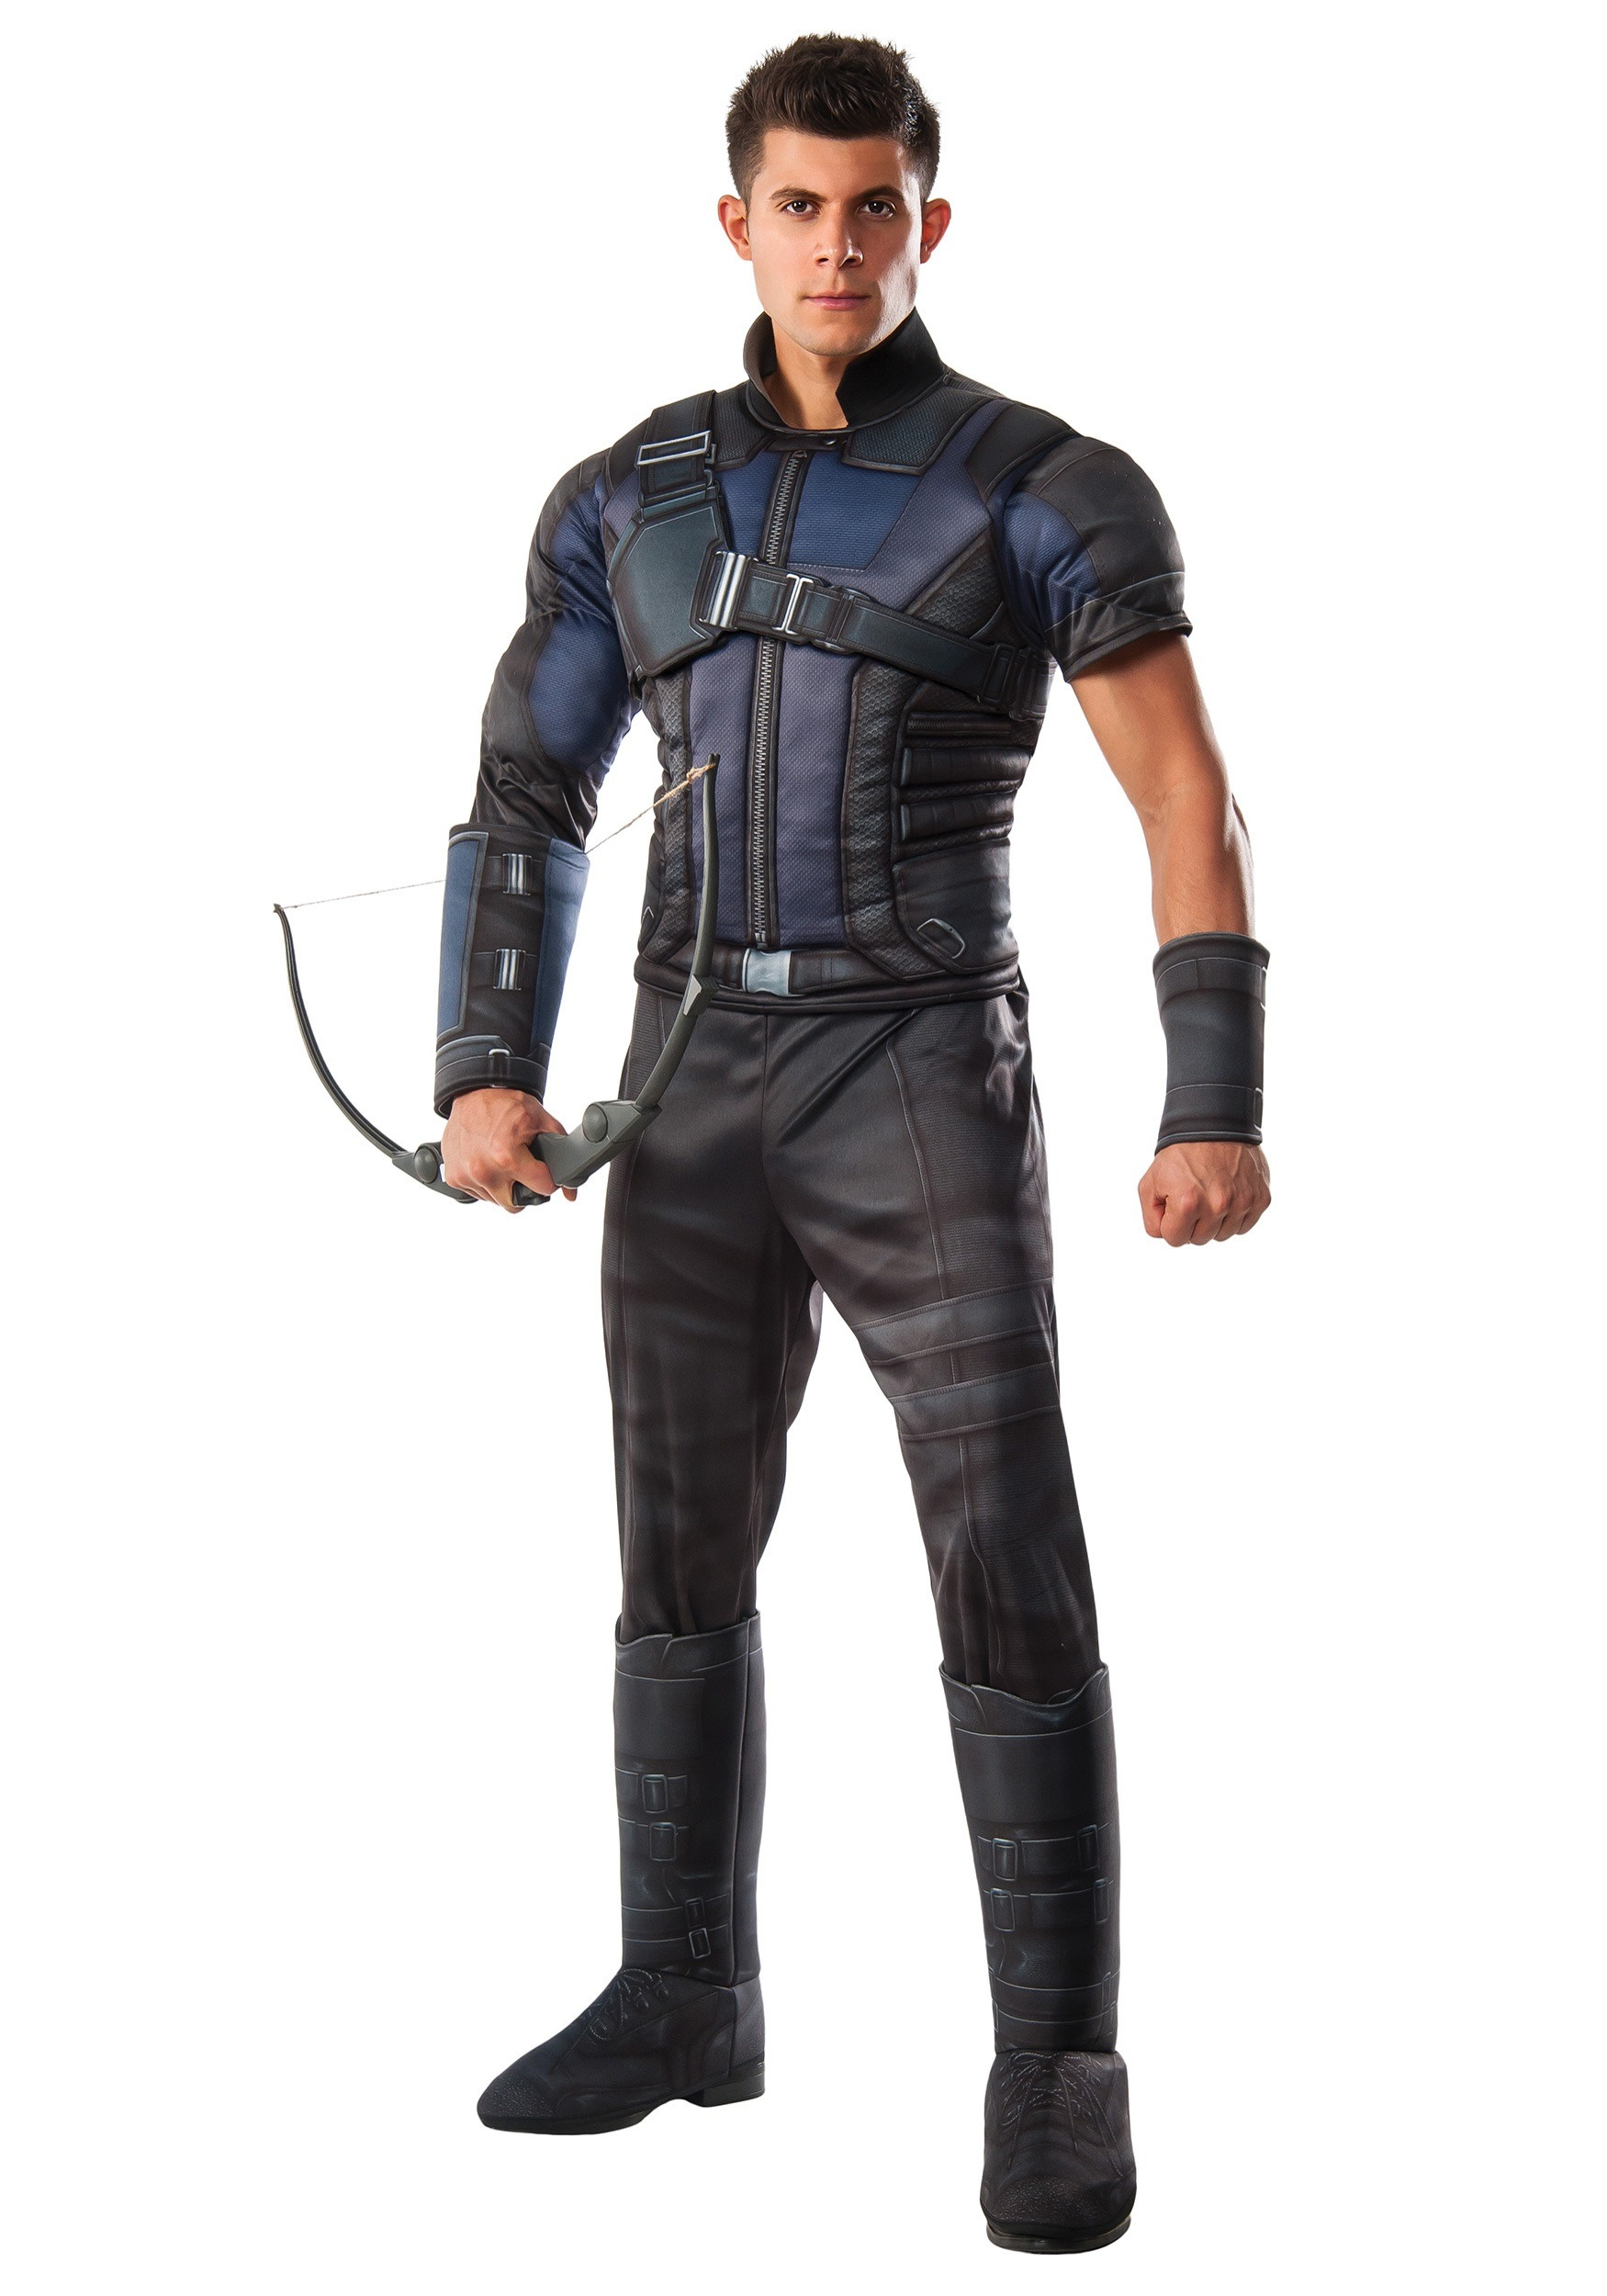 Menu0027s Deluxe Civil War Hawkeye Costume  sc 1 st  Halloween Costumes & Avengers Hawkeye Costumes for Kids u0026 Adults - HalloweenCostumes.com